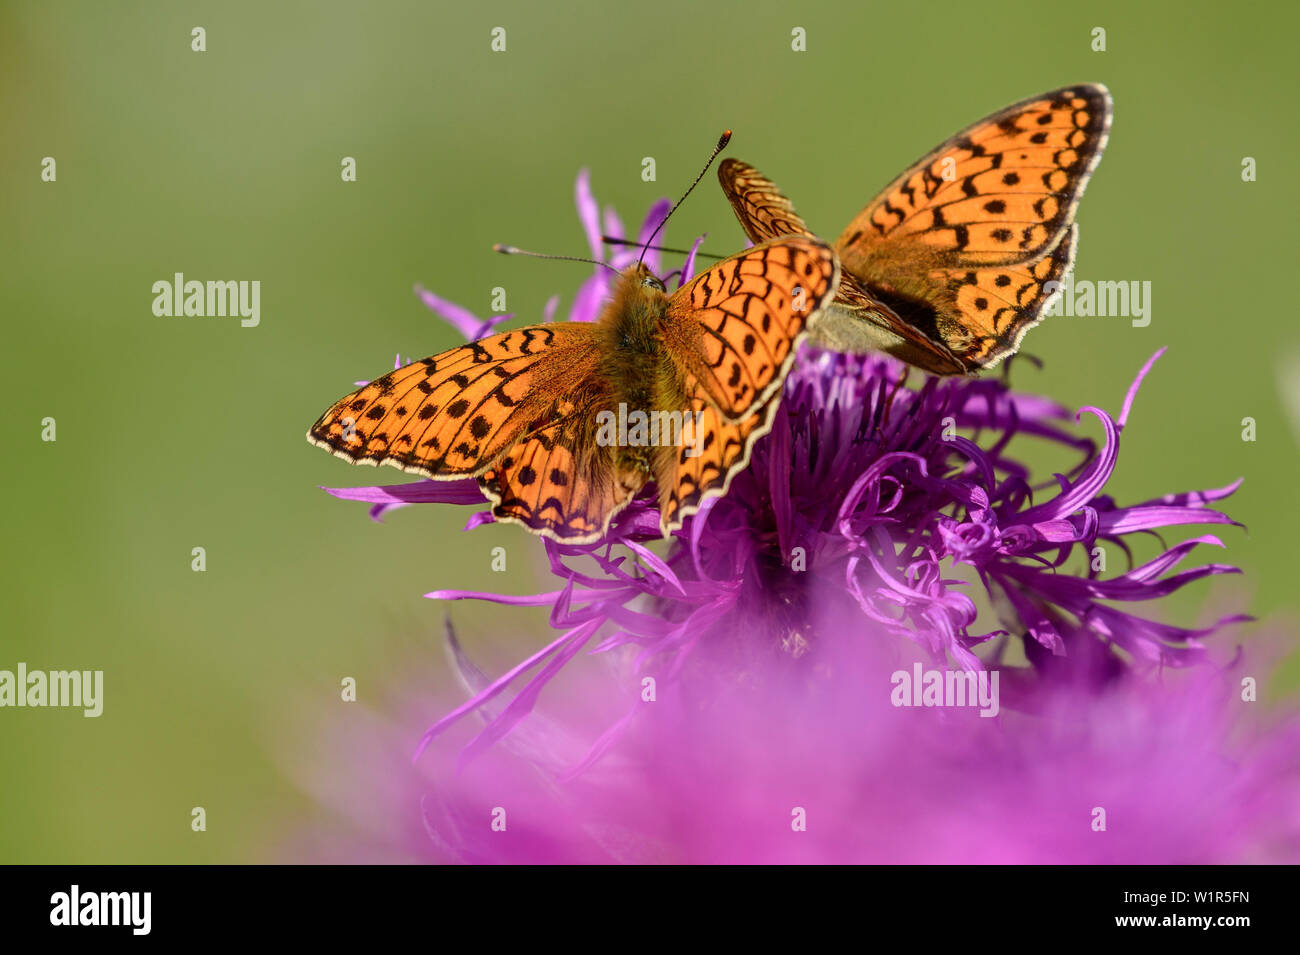 Two Queen of Spain fritillaries sitting on blossom, Issoria lathonia, Dauphine, Dauphiné, Hautes Alpes, France - Stock Image